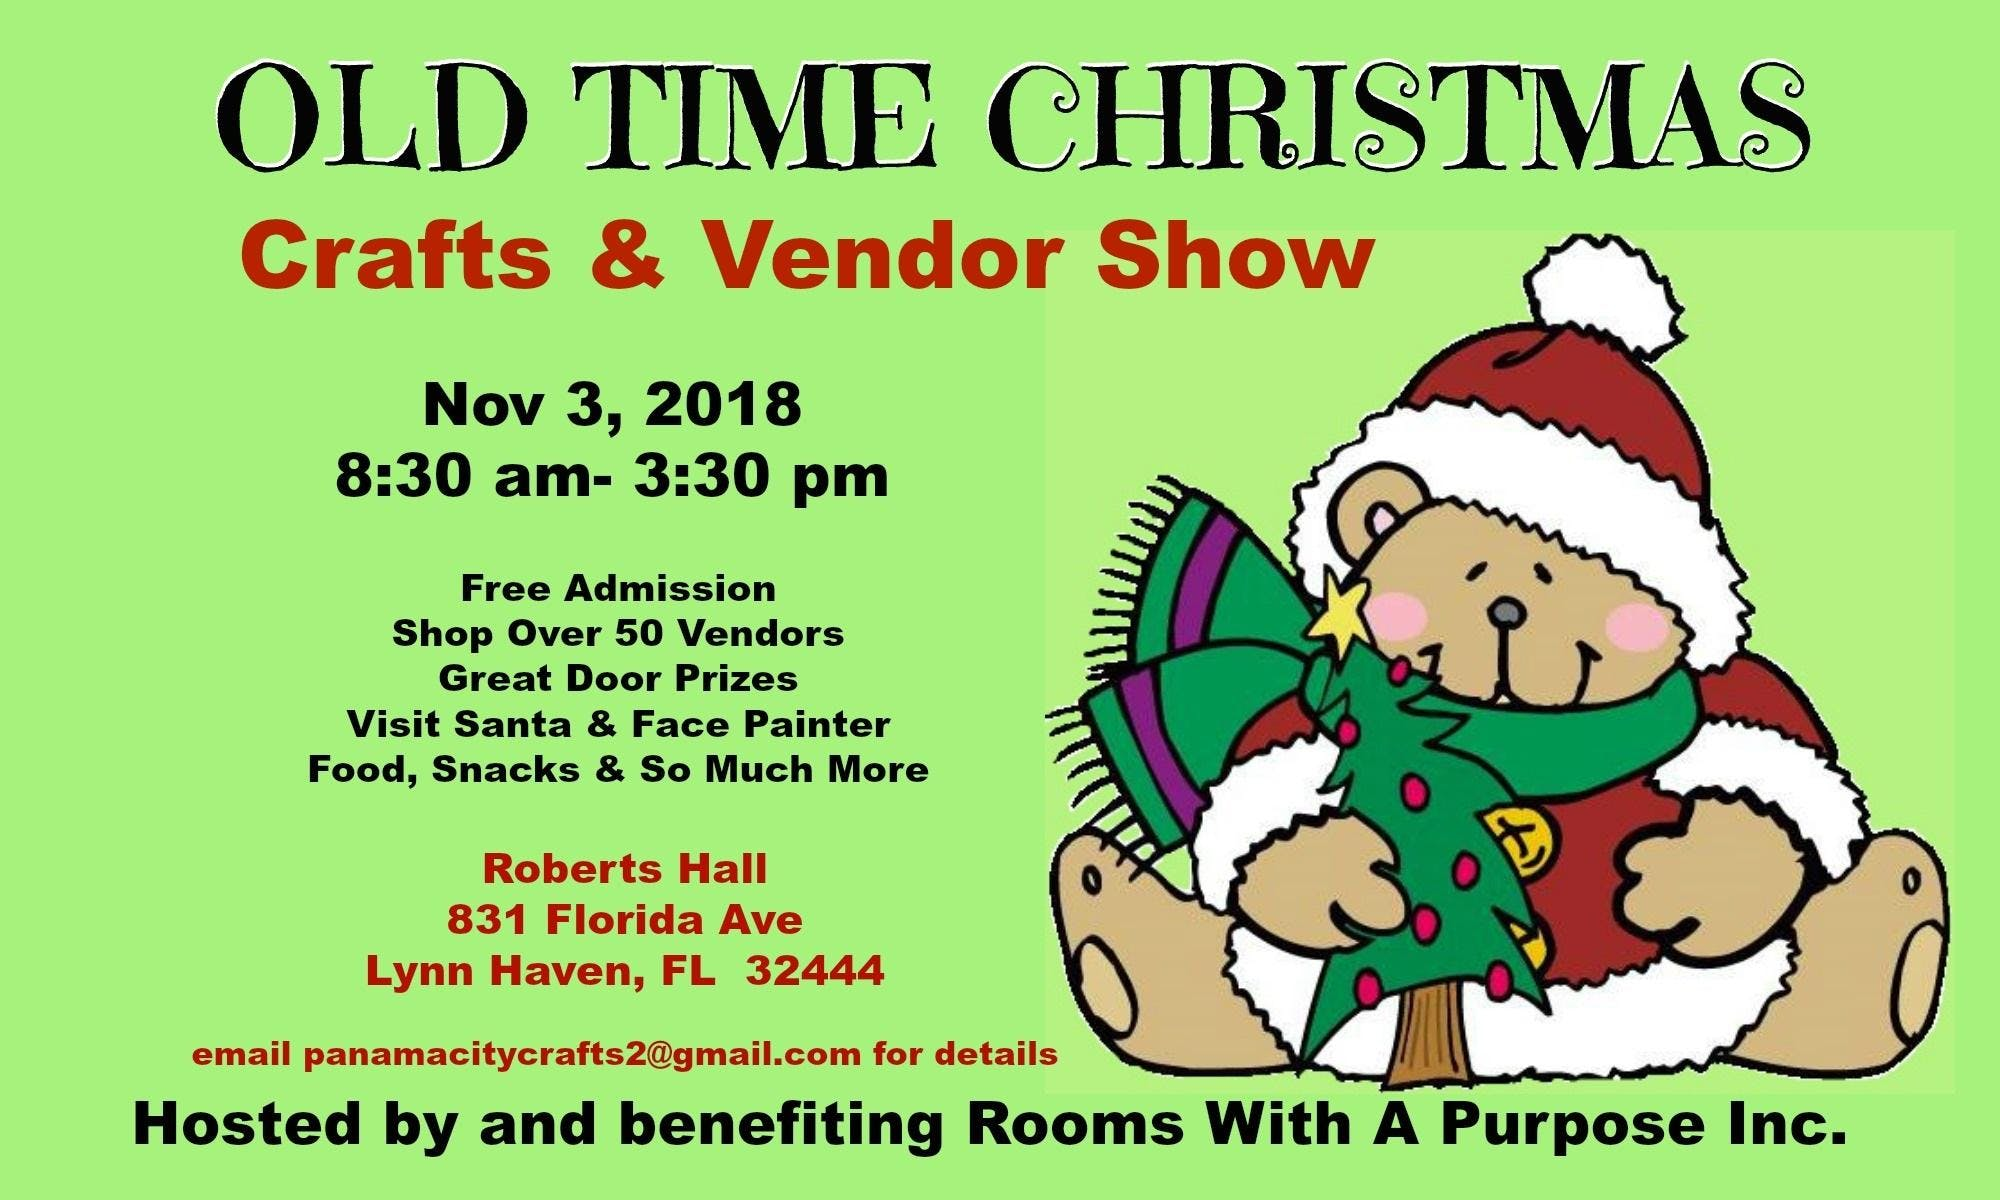 Christmas Crafts For 1 Year Olds.Old Time Christmas Craft And Vendor Show The Art Fair Gallery